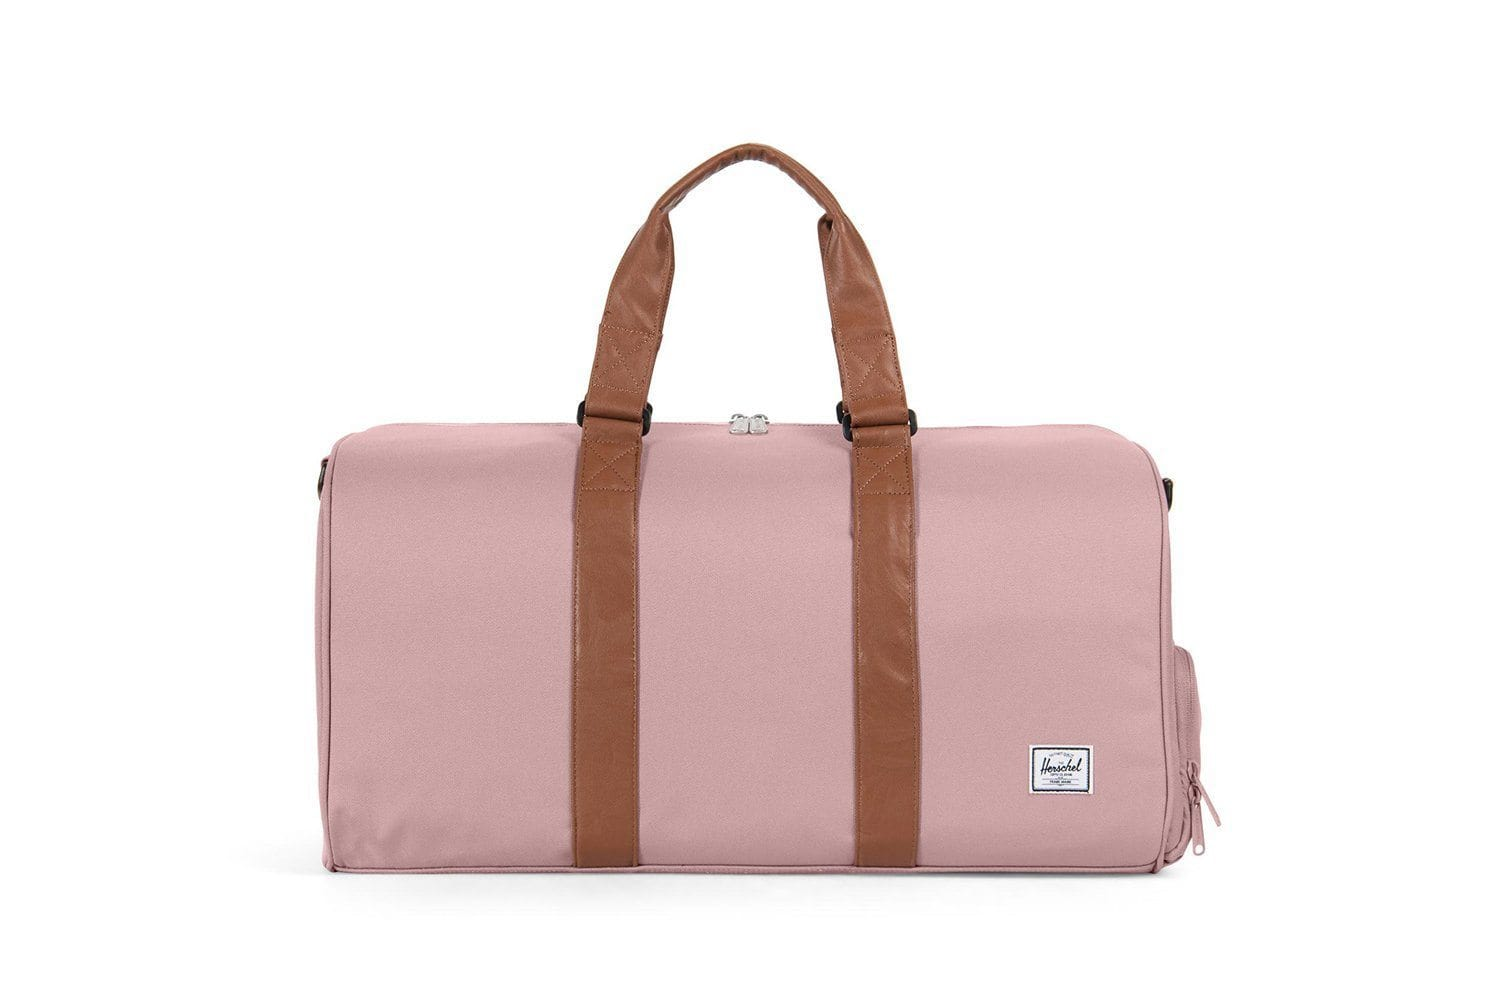 Herschel Novel Mid-volume duffle bag in ash rose